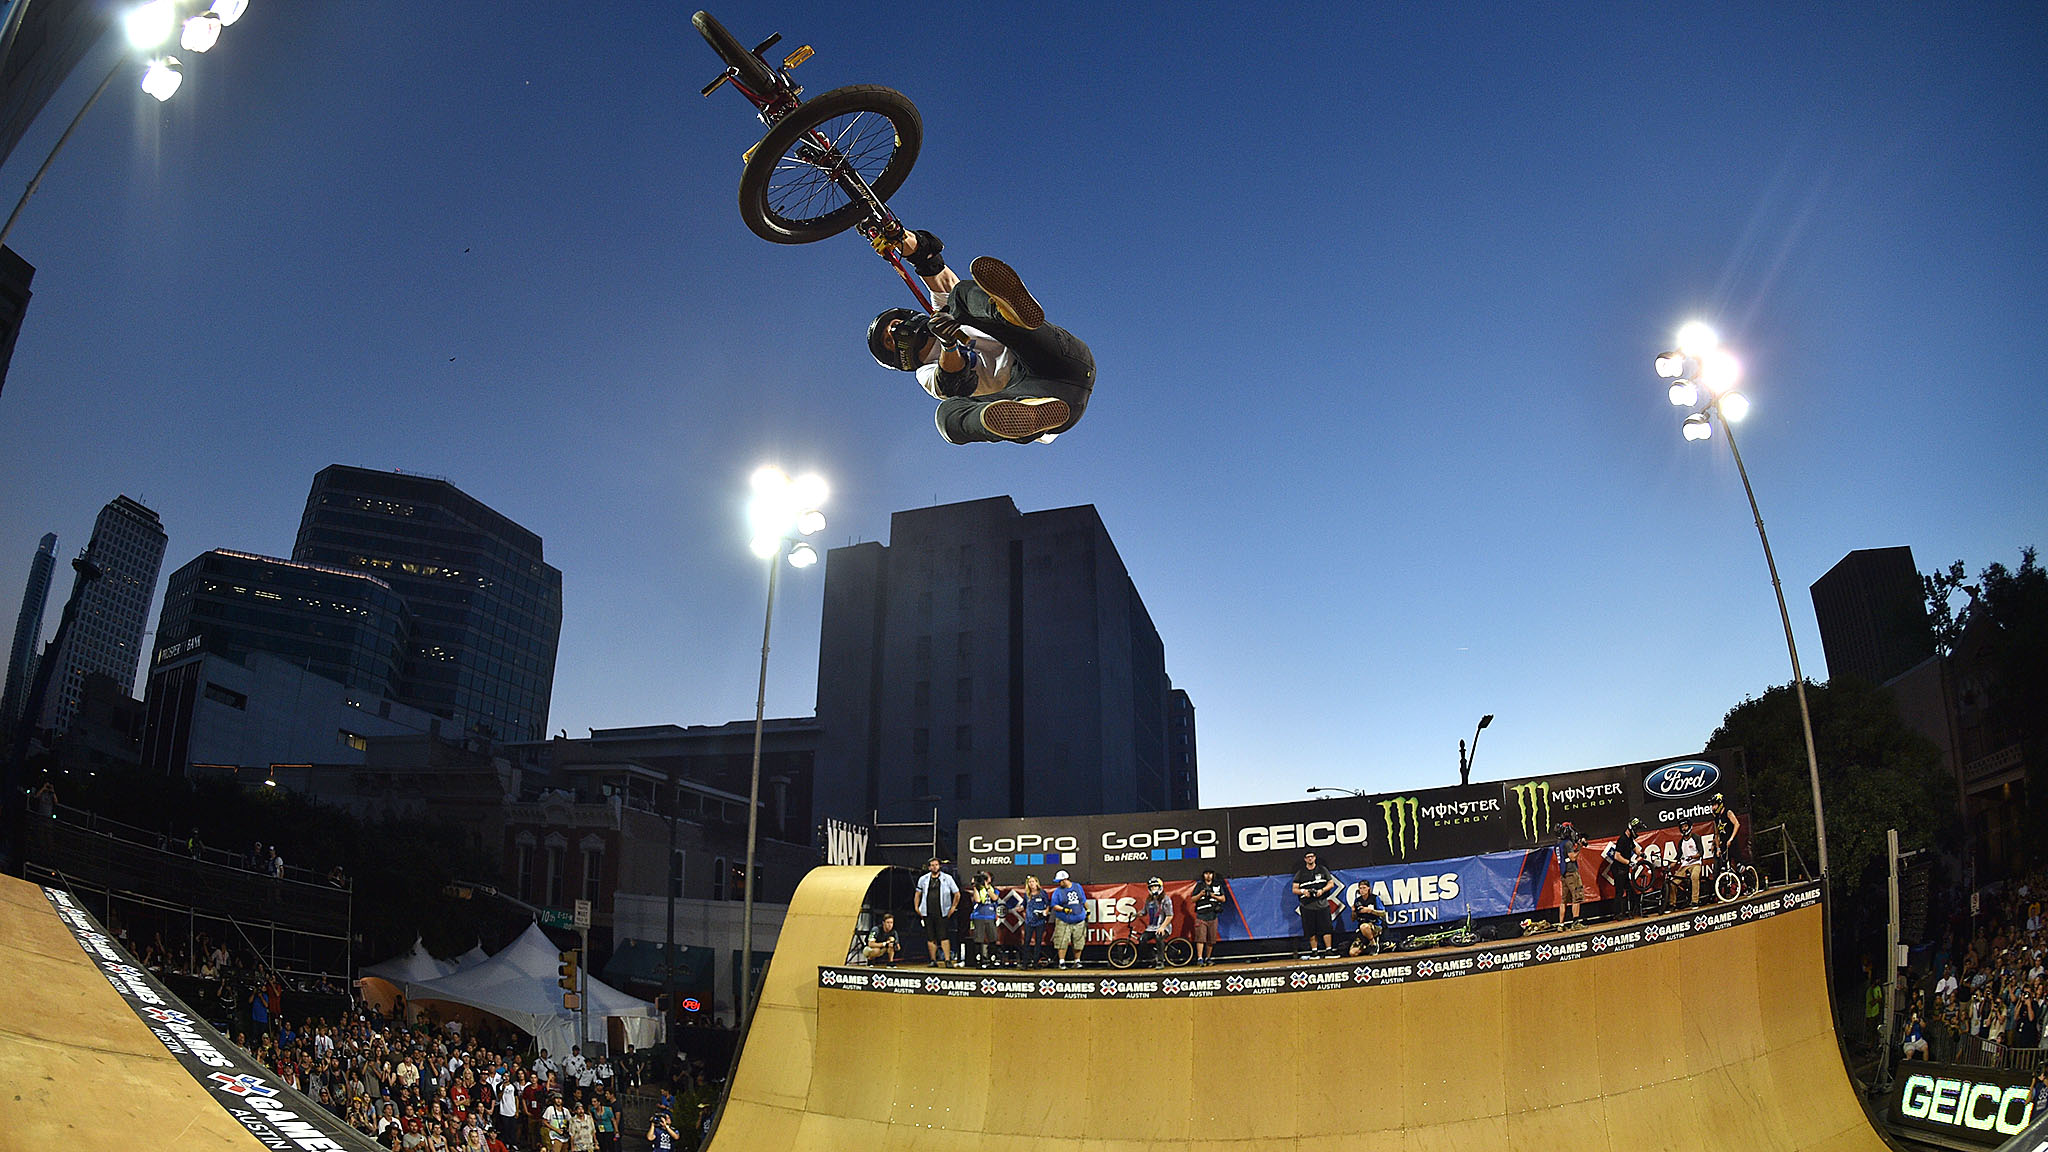 At age 42, Jamie Bestwick was the second-oldest rider in the BMX Vert field behind 47-year-old Dennis McCoy.